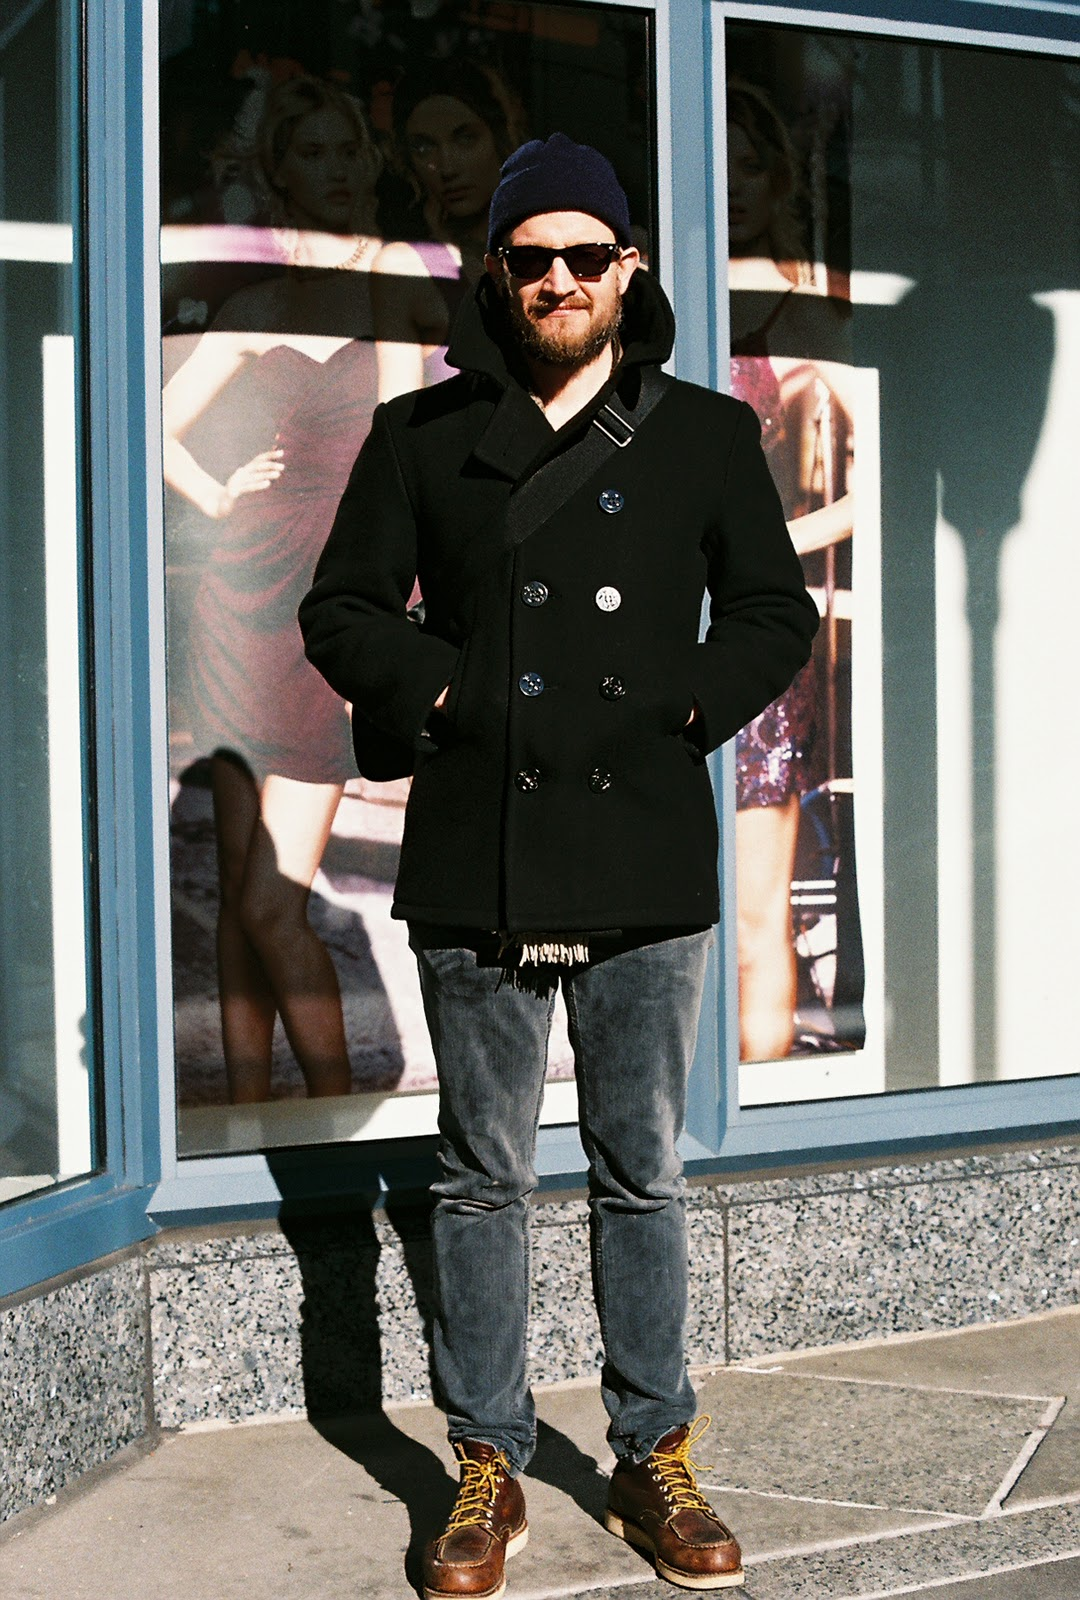 Street Gazing: Street Gazing... Pea coat, Red wing boot style.